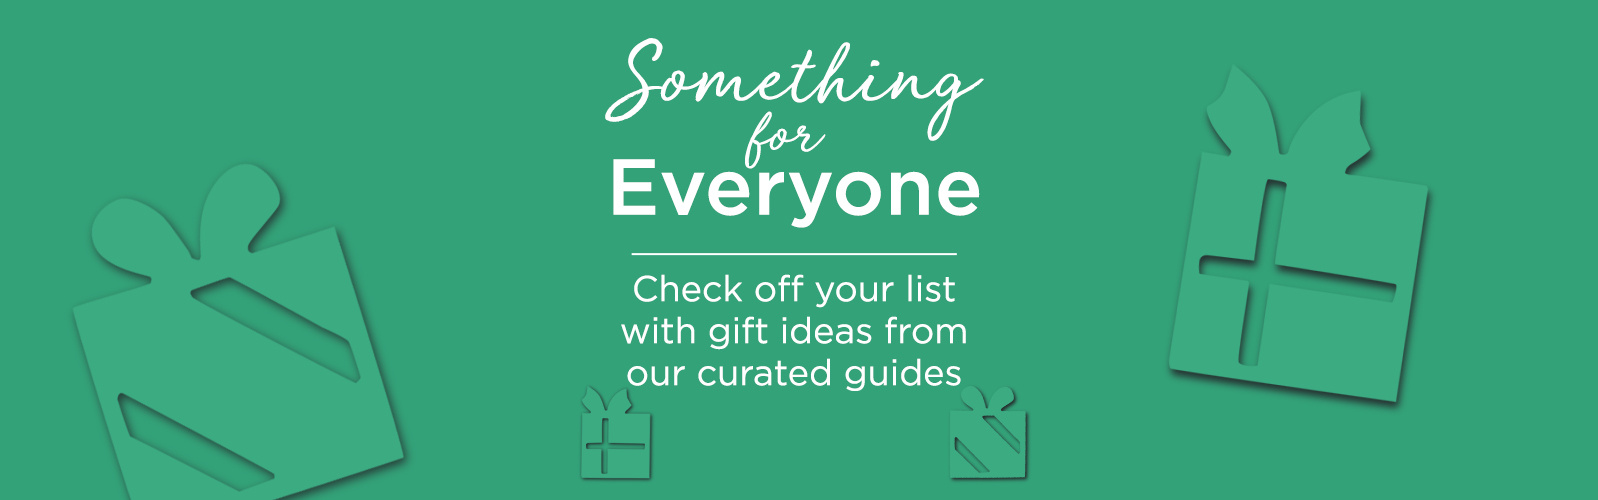 Something for Everyone  Check off your list with gift ideas from our curated guides